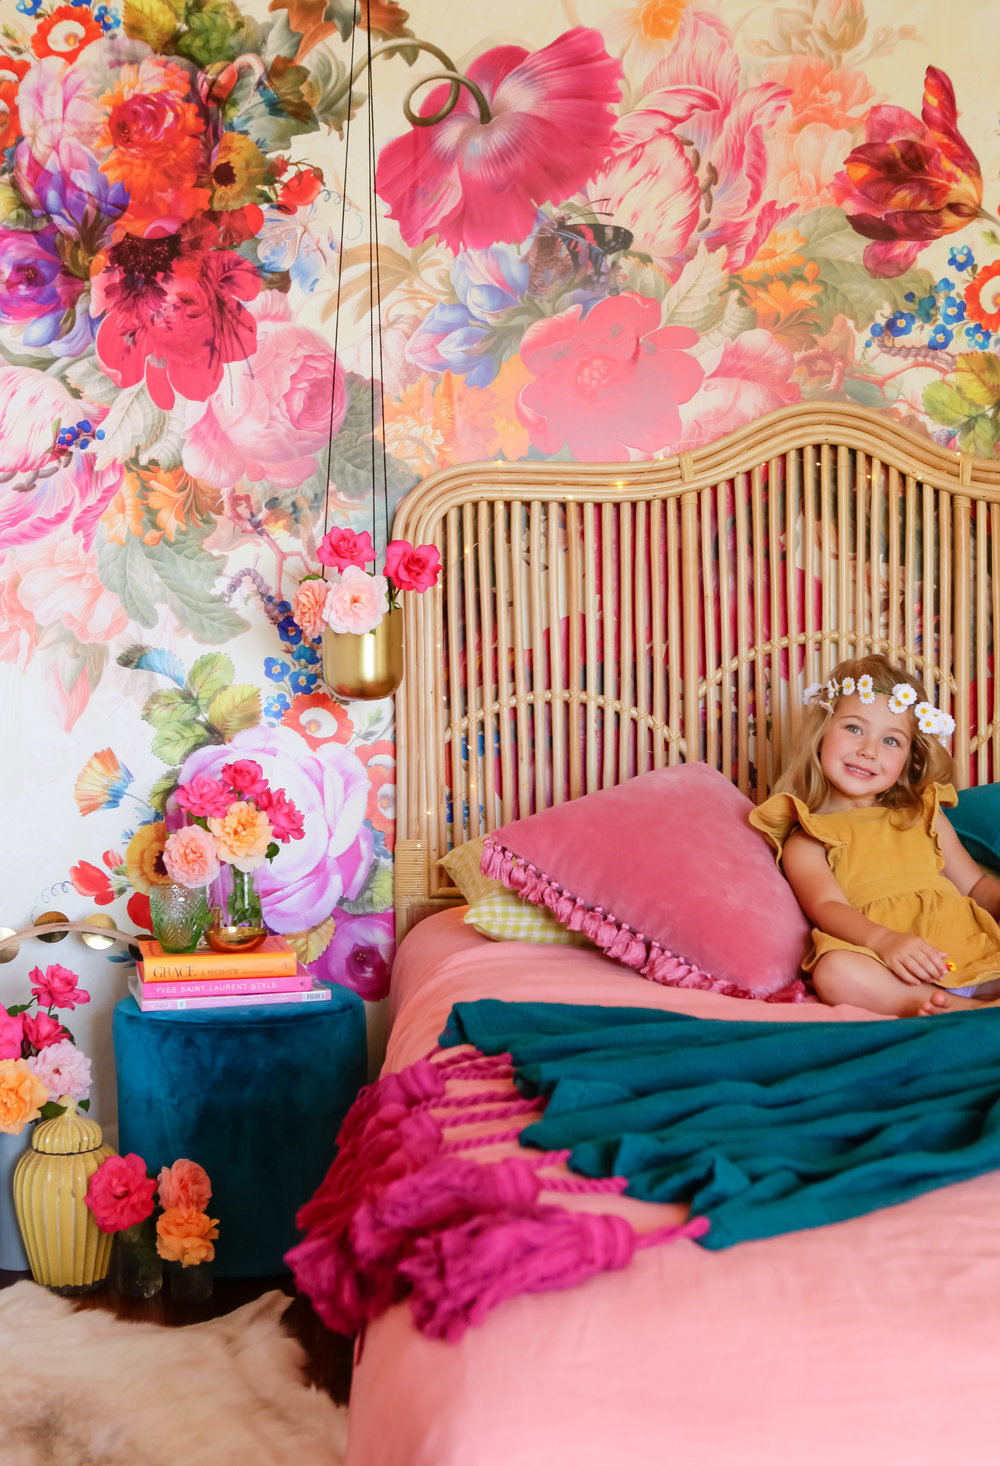 Cane Bedhead, mural wallpaper, velvet and Jemima wearing a 70's inspired corduroy dress pictured in a product styling shoot in my own home - how's that for channelling a 70's vibe! Bedhead by Naturally Cane Furniture, image by Carrie Young Photography, Styling by me.